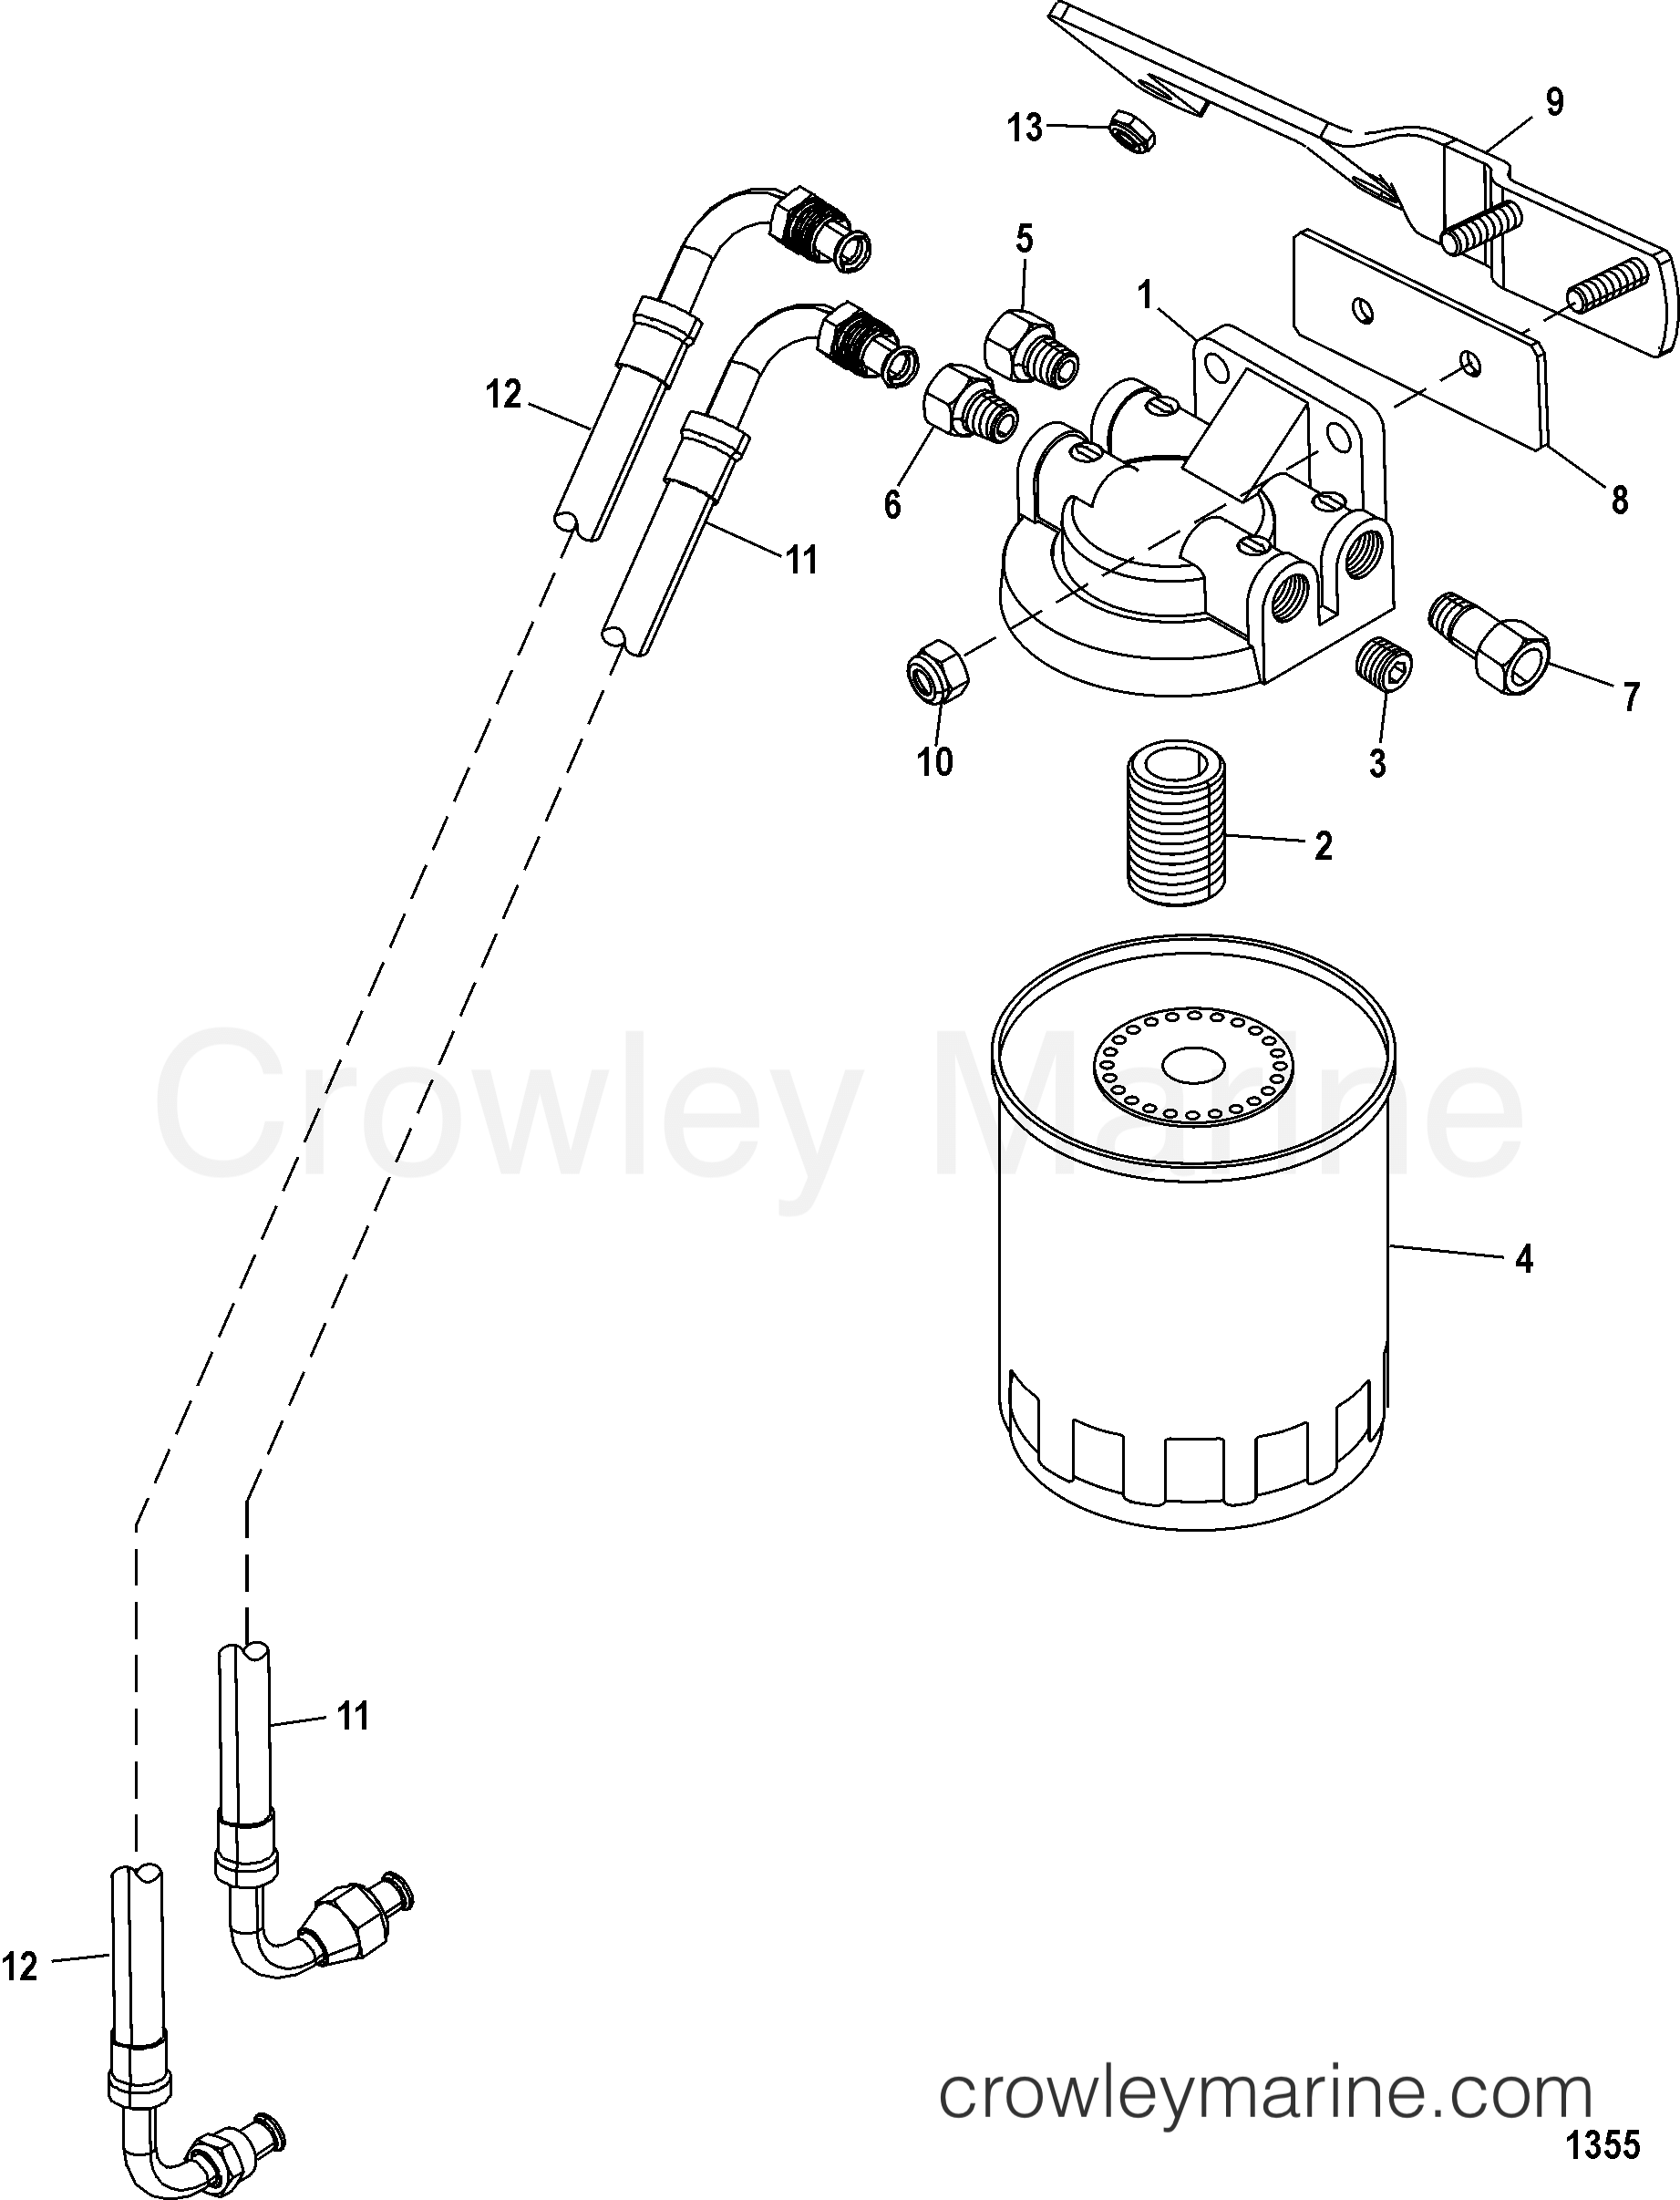 fuel filter 1998 mercruiser 4 3l alpha mpi 424106lrs crowley rh crowleymarine com mercruiser fuel system diagram mercruiser electric fuel pump diagram